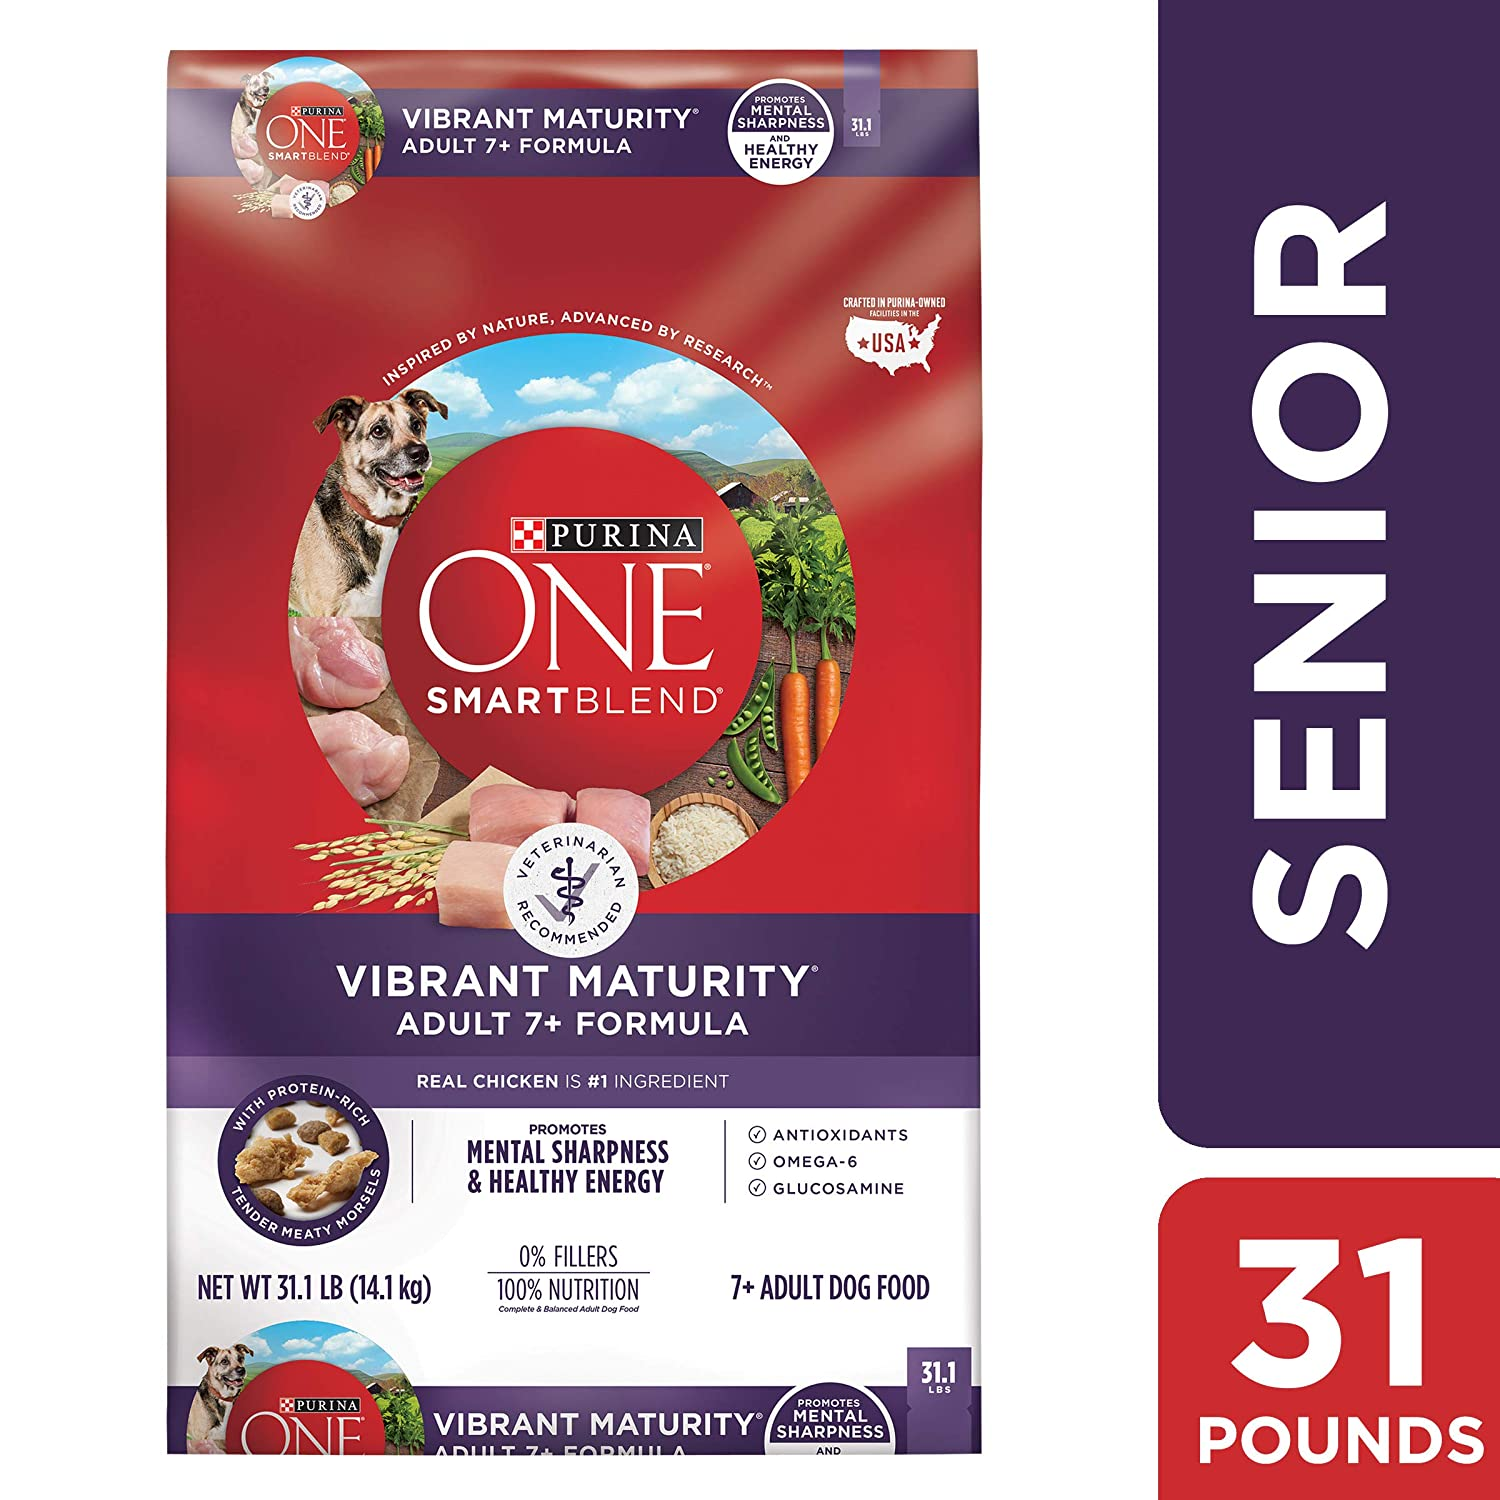 Purina ONE SmartBlend Vibrant Maturity Senior 7 Formula Dog Food